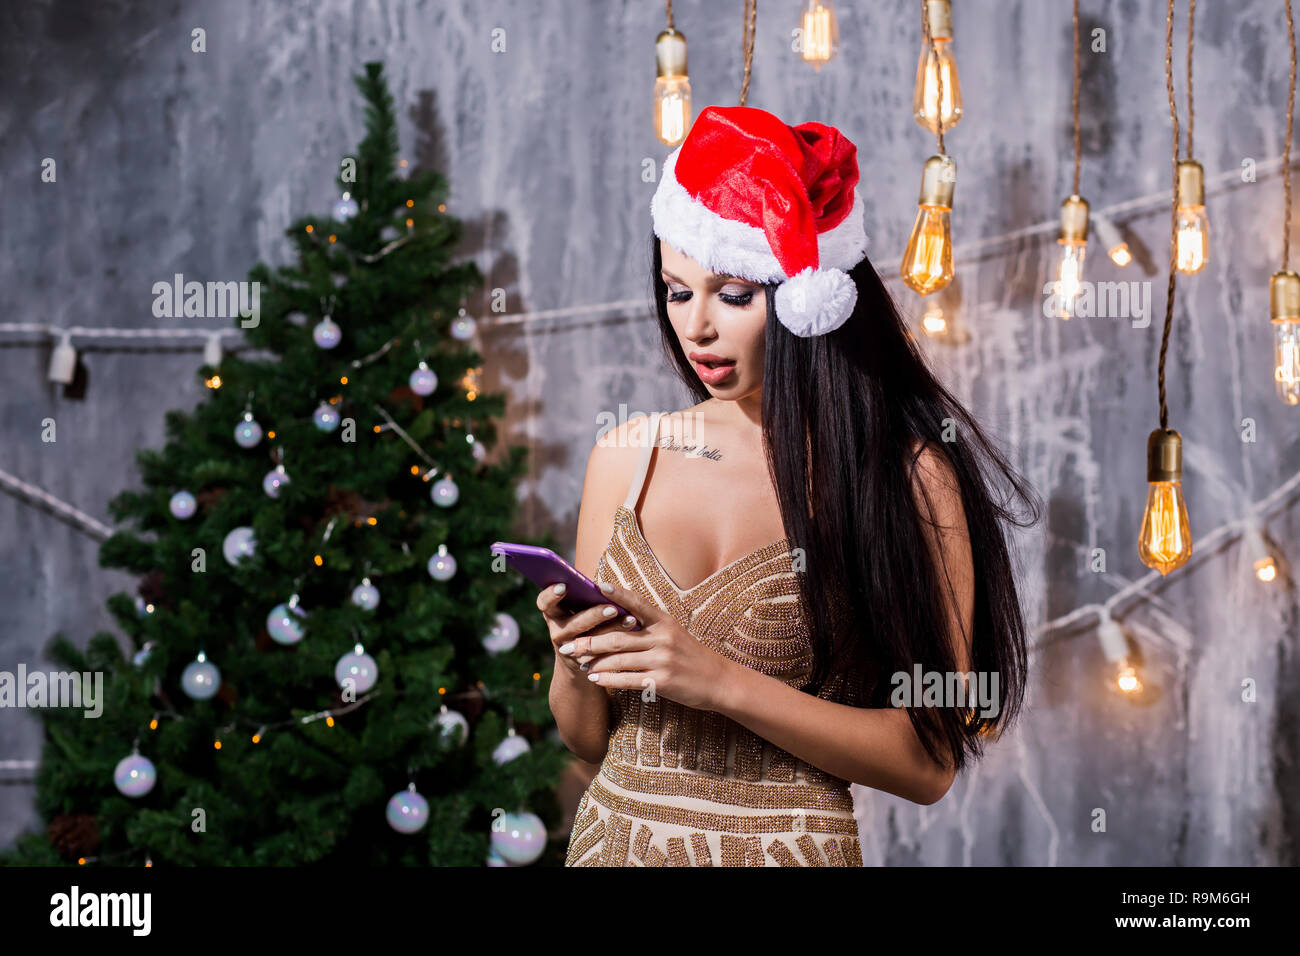 stylish woman holding phone looking at screen at christmas tree lights. wearing santa hat smiling. seasonal greetings concept. space for text. Holiday - Stock Image